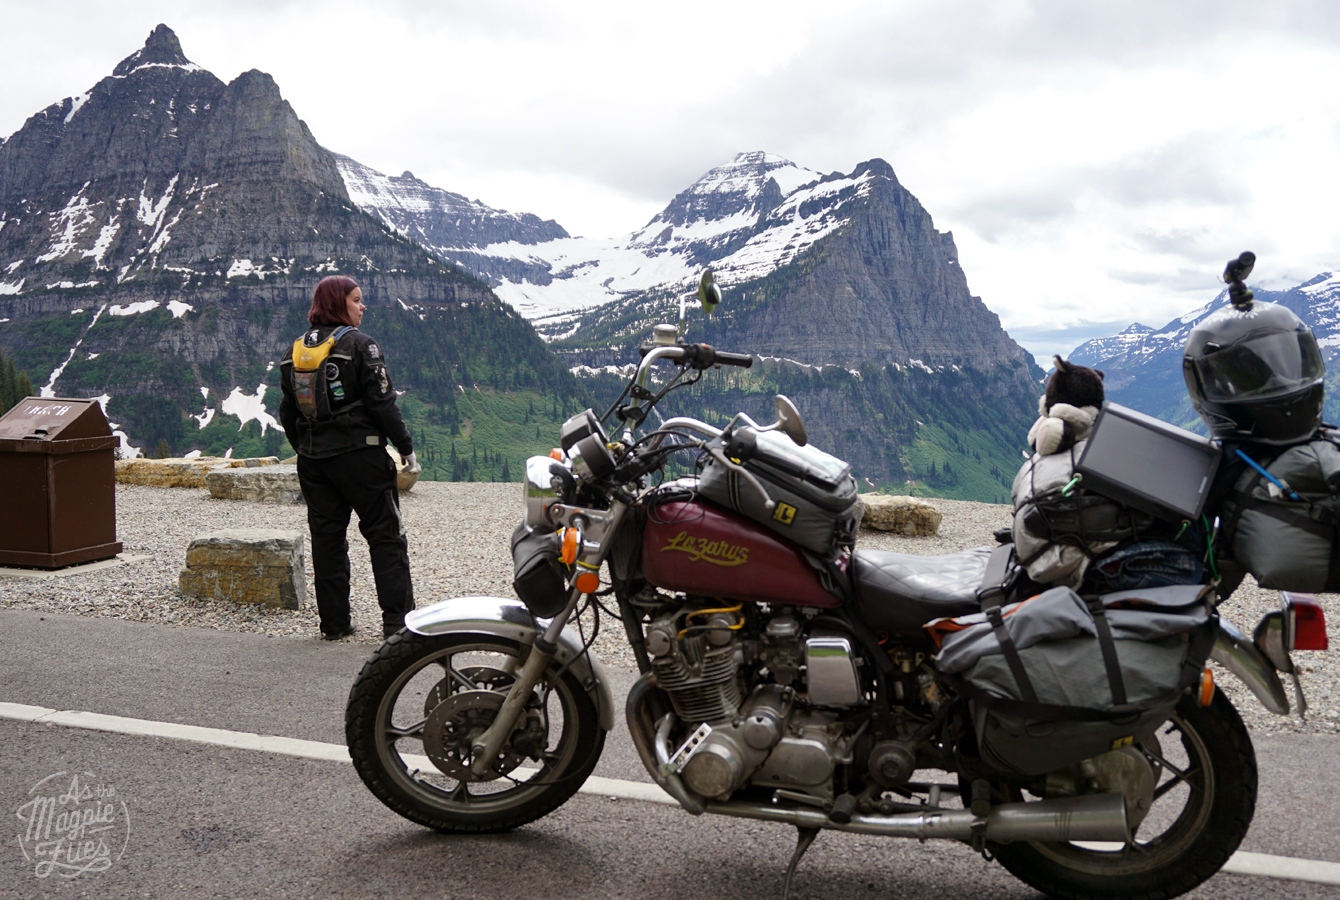 Amanda and Lazarus her 1980 Suzuki GS850gl geared up with Wolfman Luggage, in Glacier National Park, June 2016.